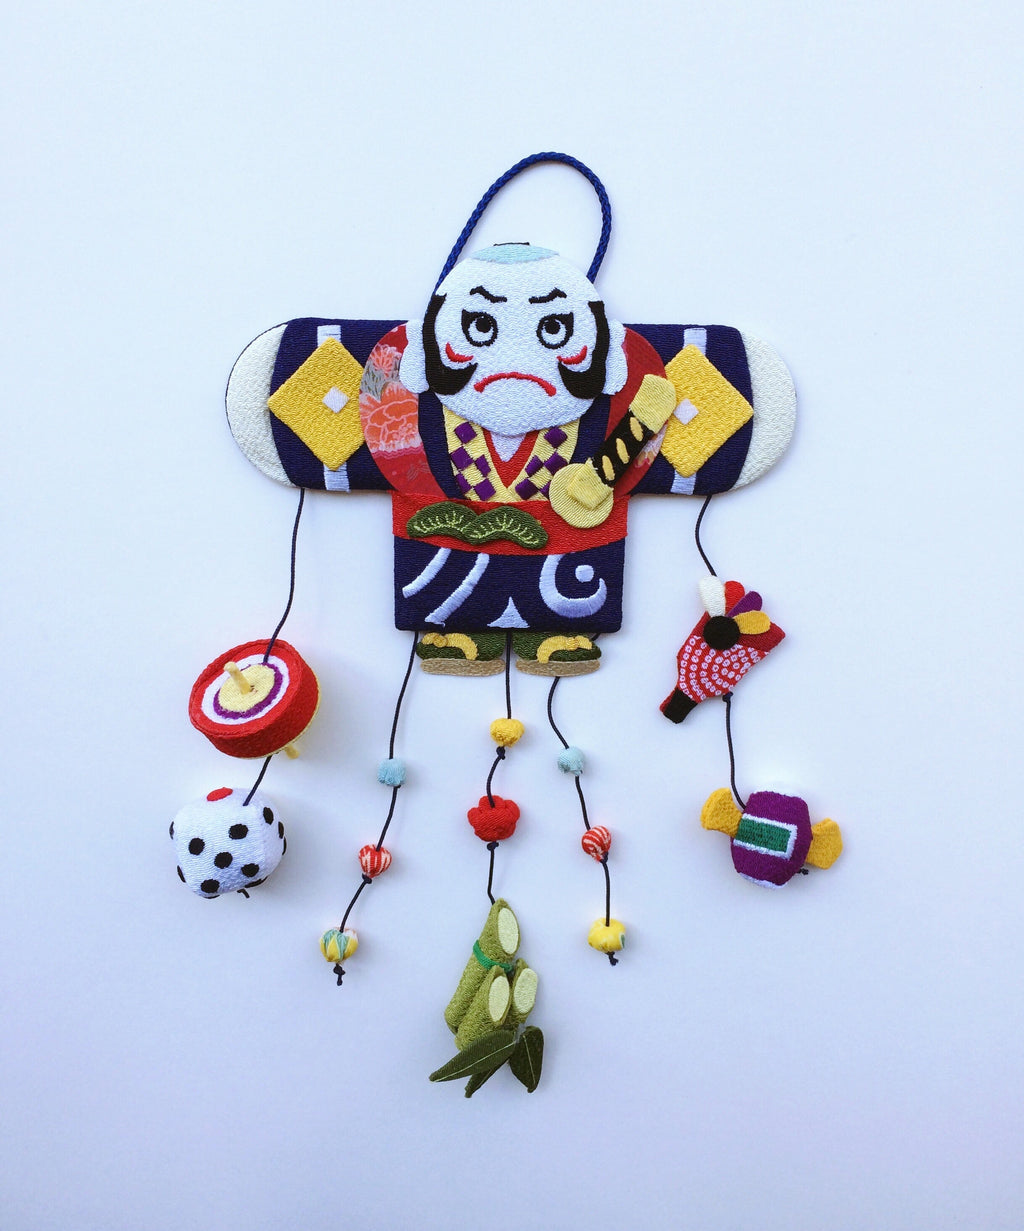 Handmade ornament Japan : Angry guy